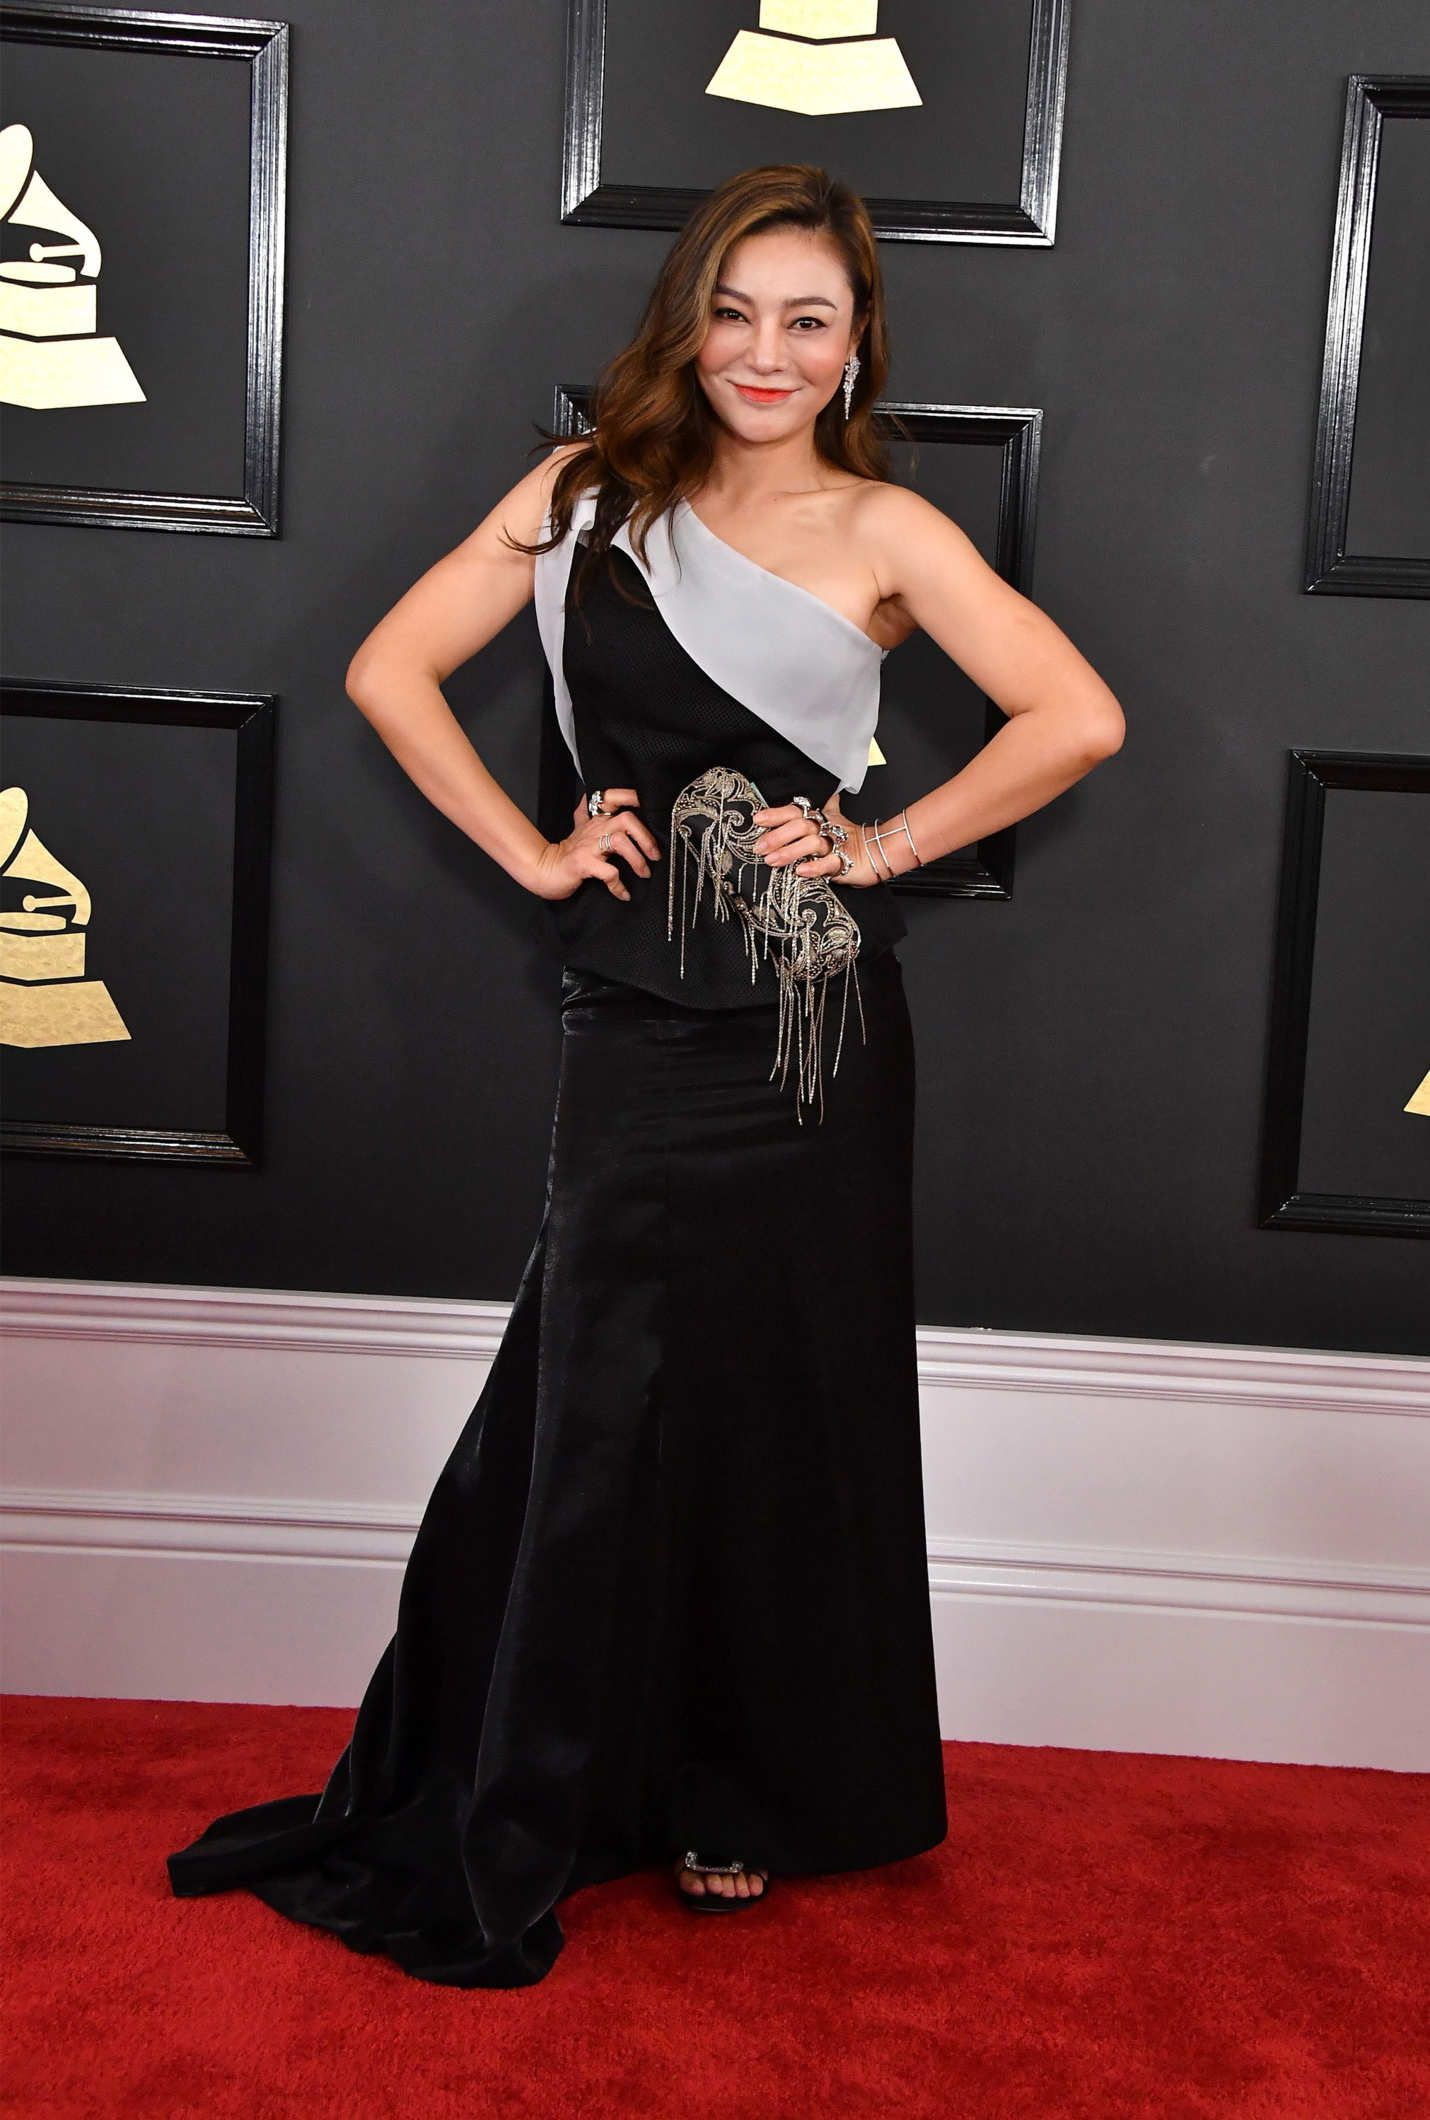 Diana gordon on red carpet grammy awards in los angeles new images